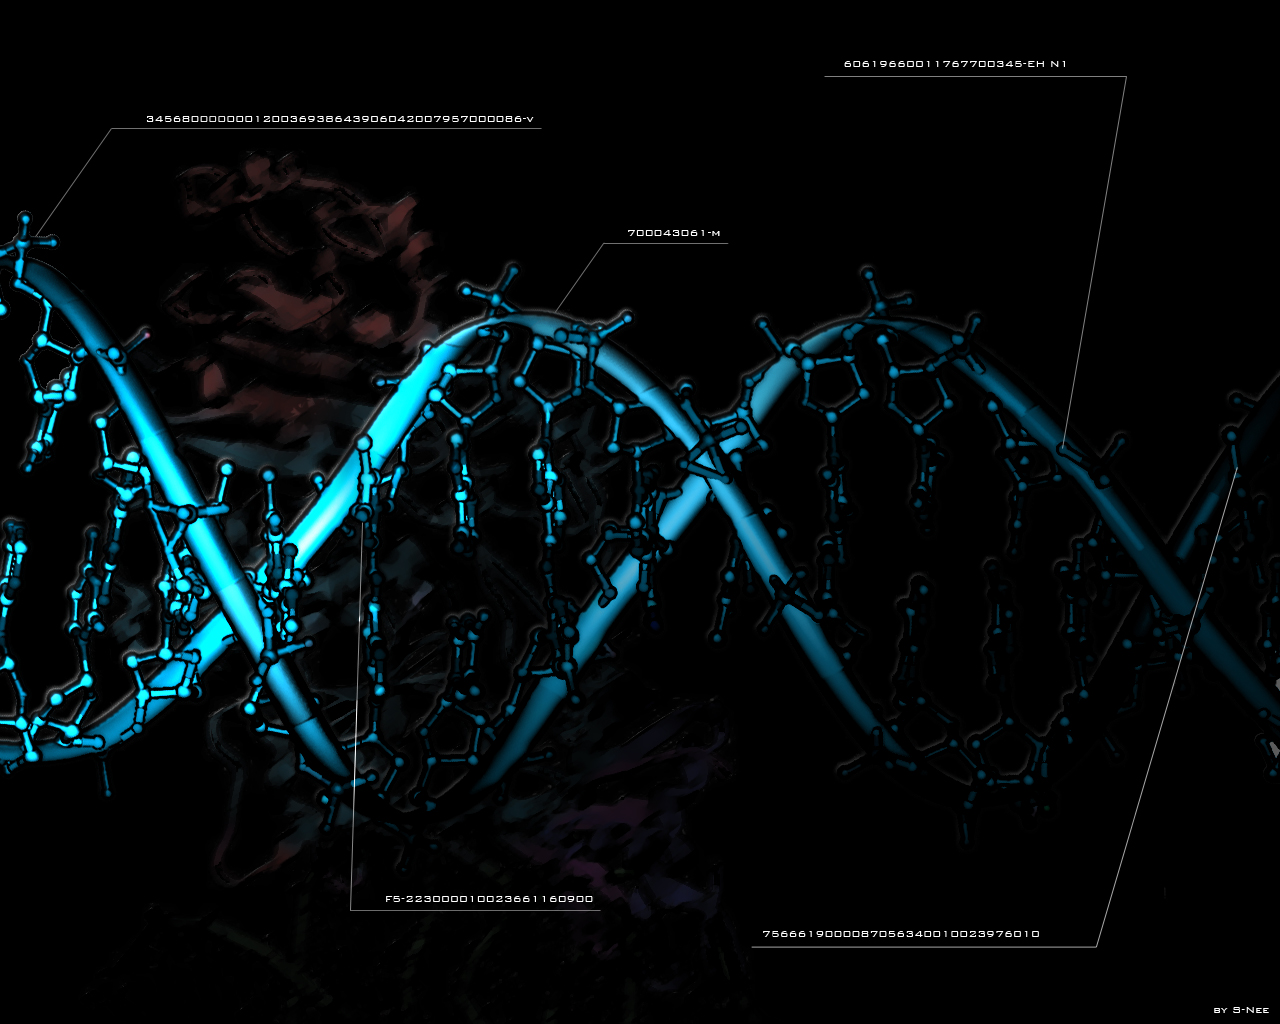 Download Dna Molecule Wallpaper 1280x1024 Full HD Wallpapers 1280x1024